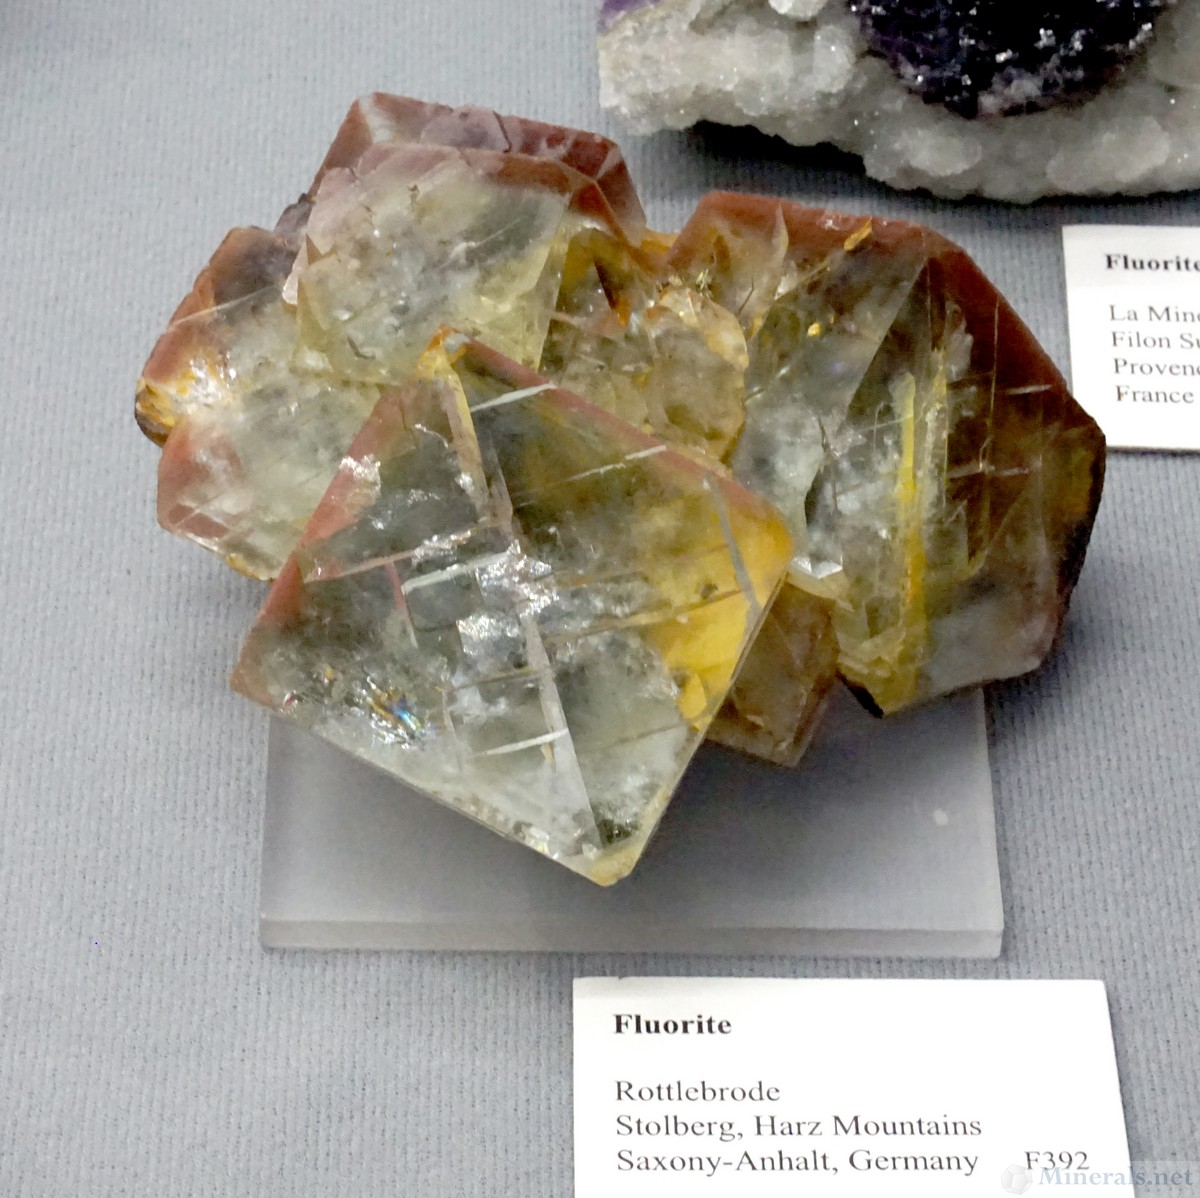 Multicolored Fluorite from Rottlebrode, Stolberg, Harz Mountains, Germany, Jesse Fisher